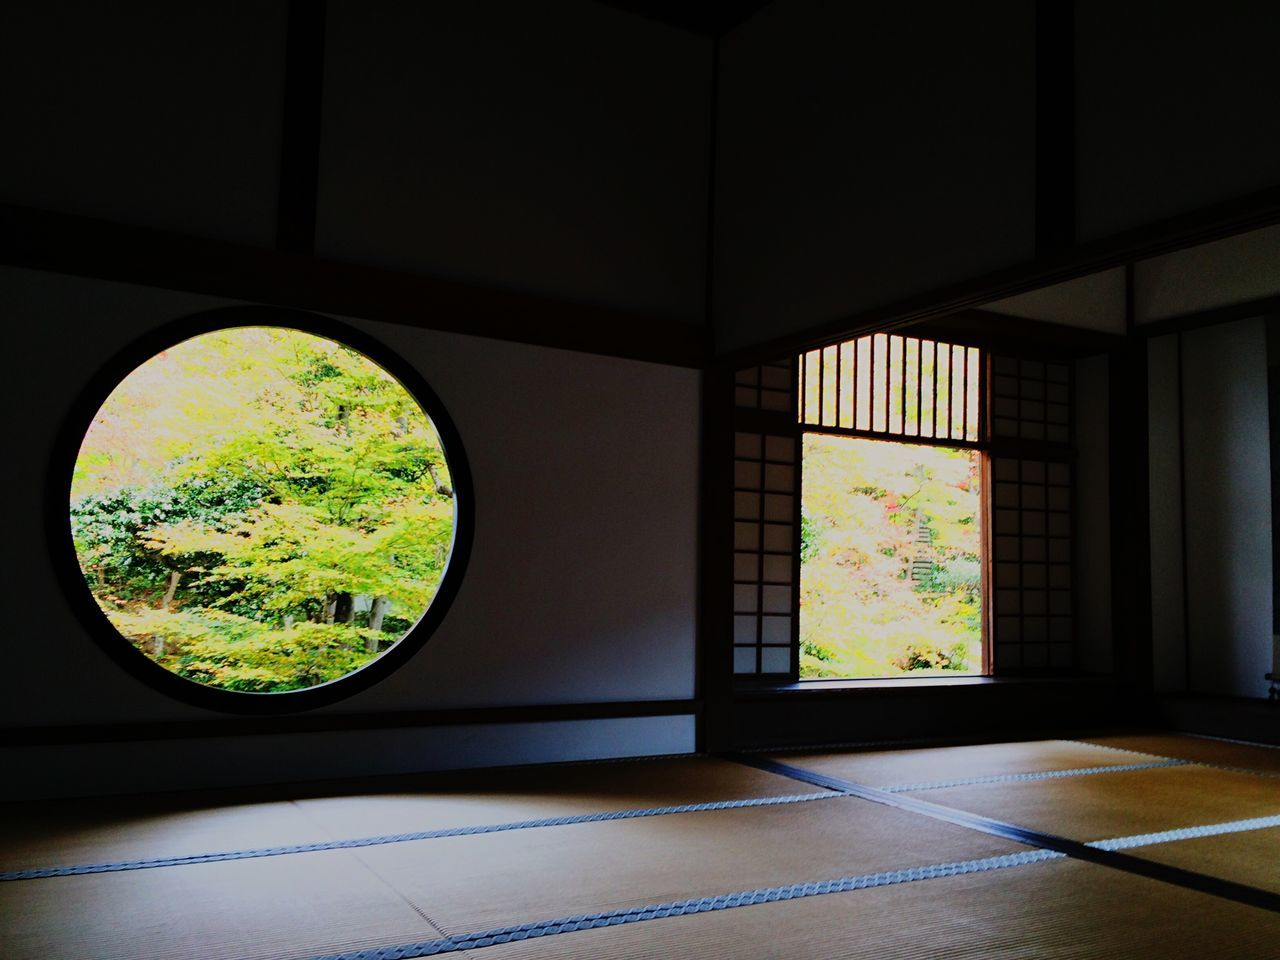 indoors, window, no people, day, home interior, tree, architecture, close-up